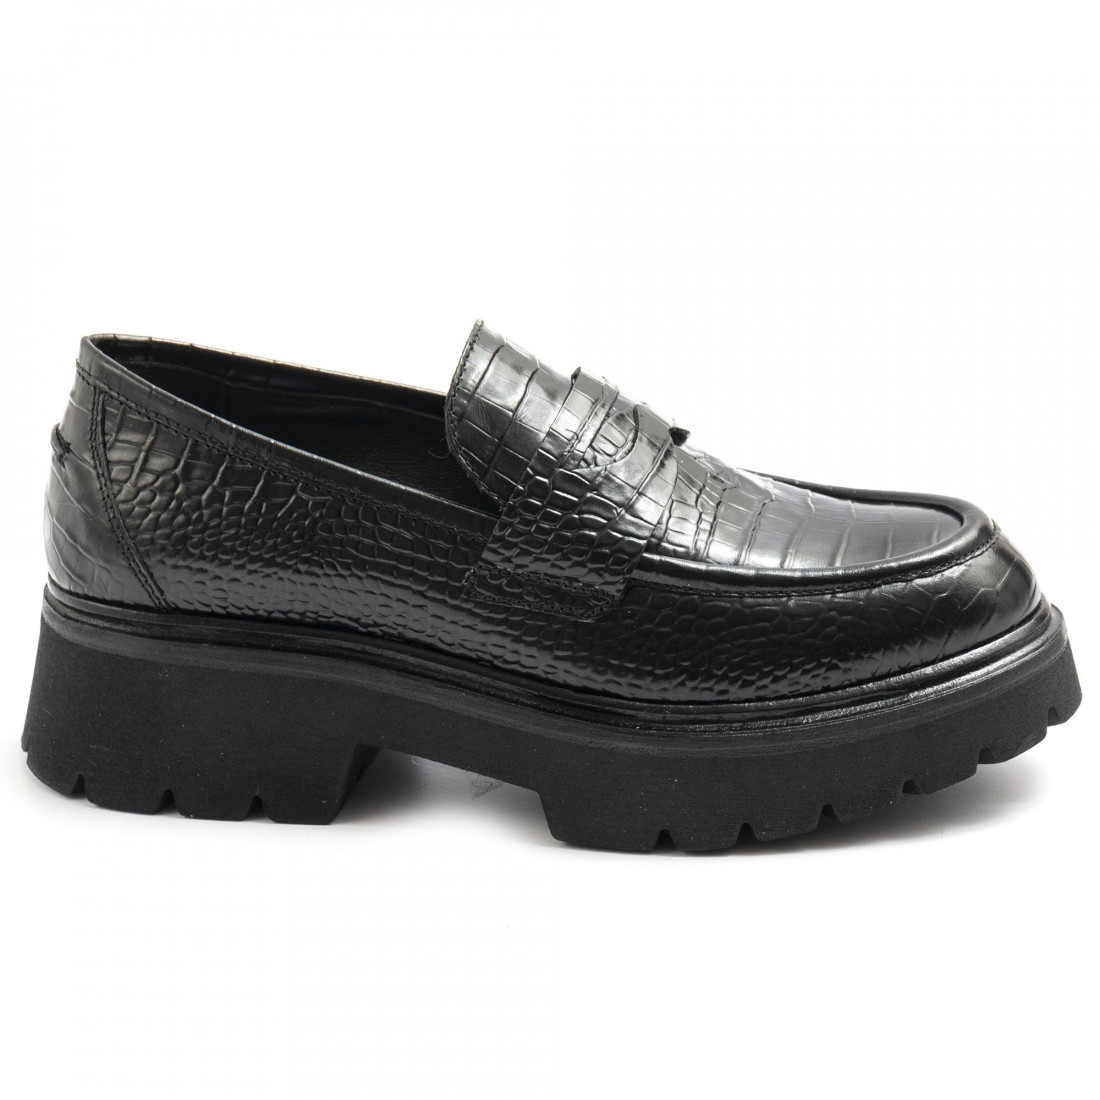 loafers woman janet  janet 467575astro nero 287 7744